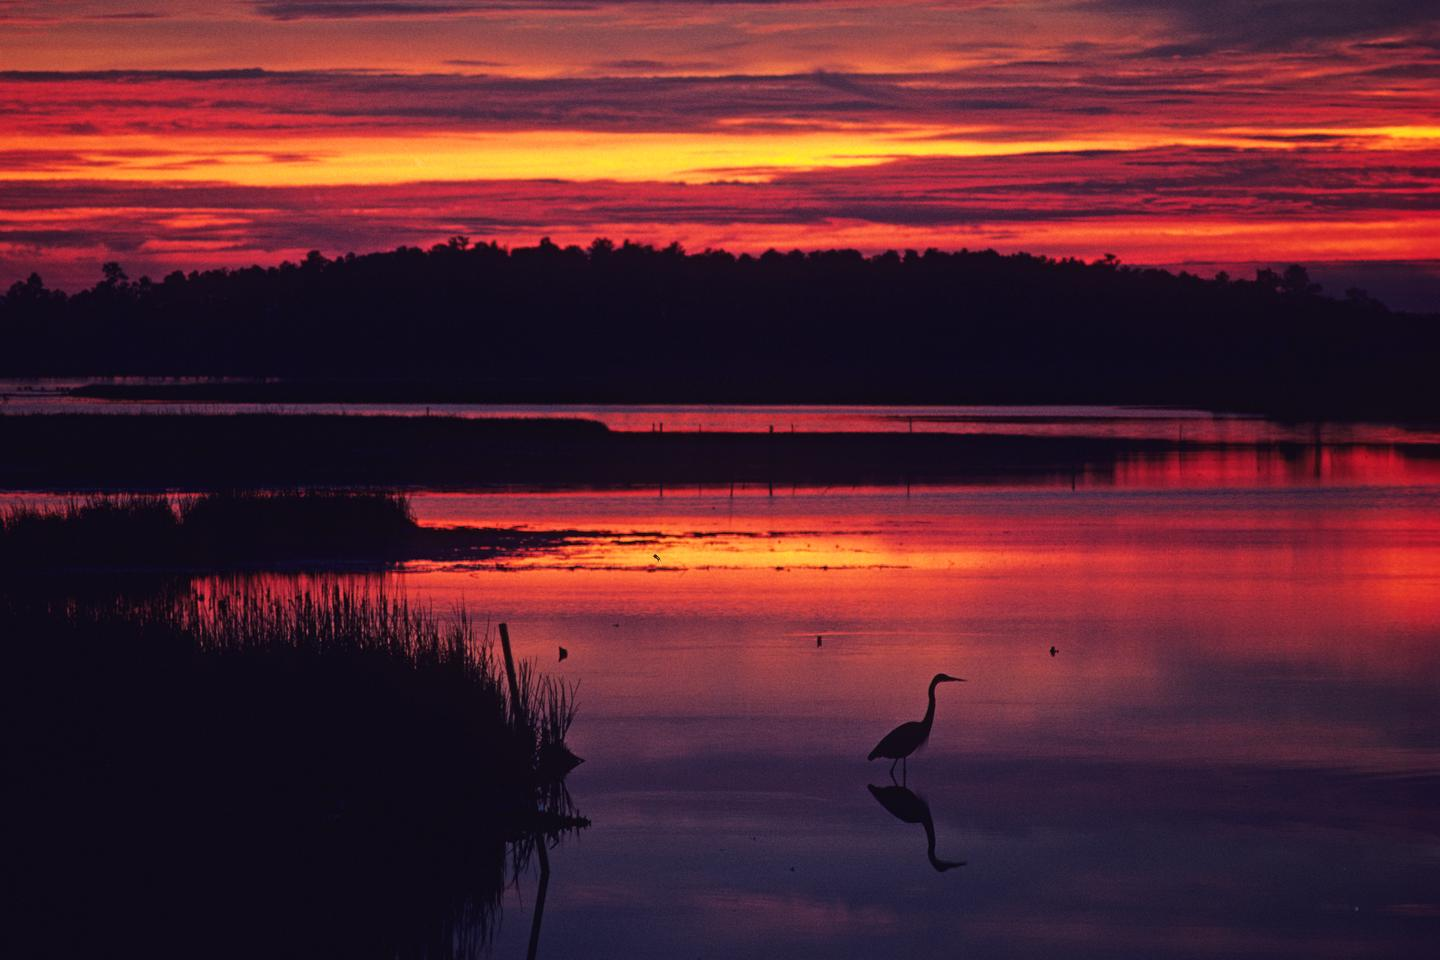 Heron at sunset at Blackwater NWRMany people visit Blackwater National Wildlife Refuge to spot birds, like this heron, that rely the natural resources of the landscape.